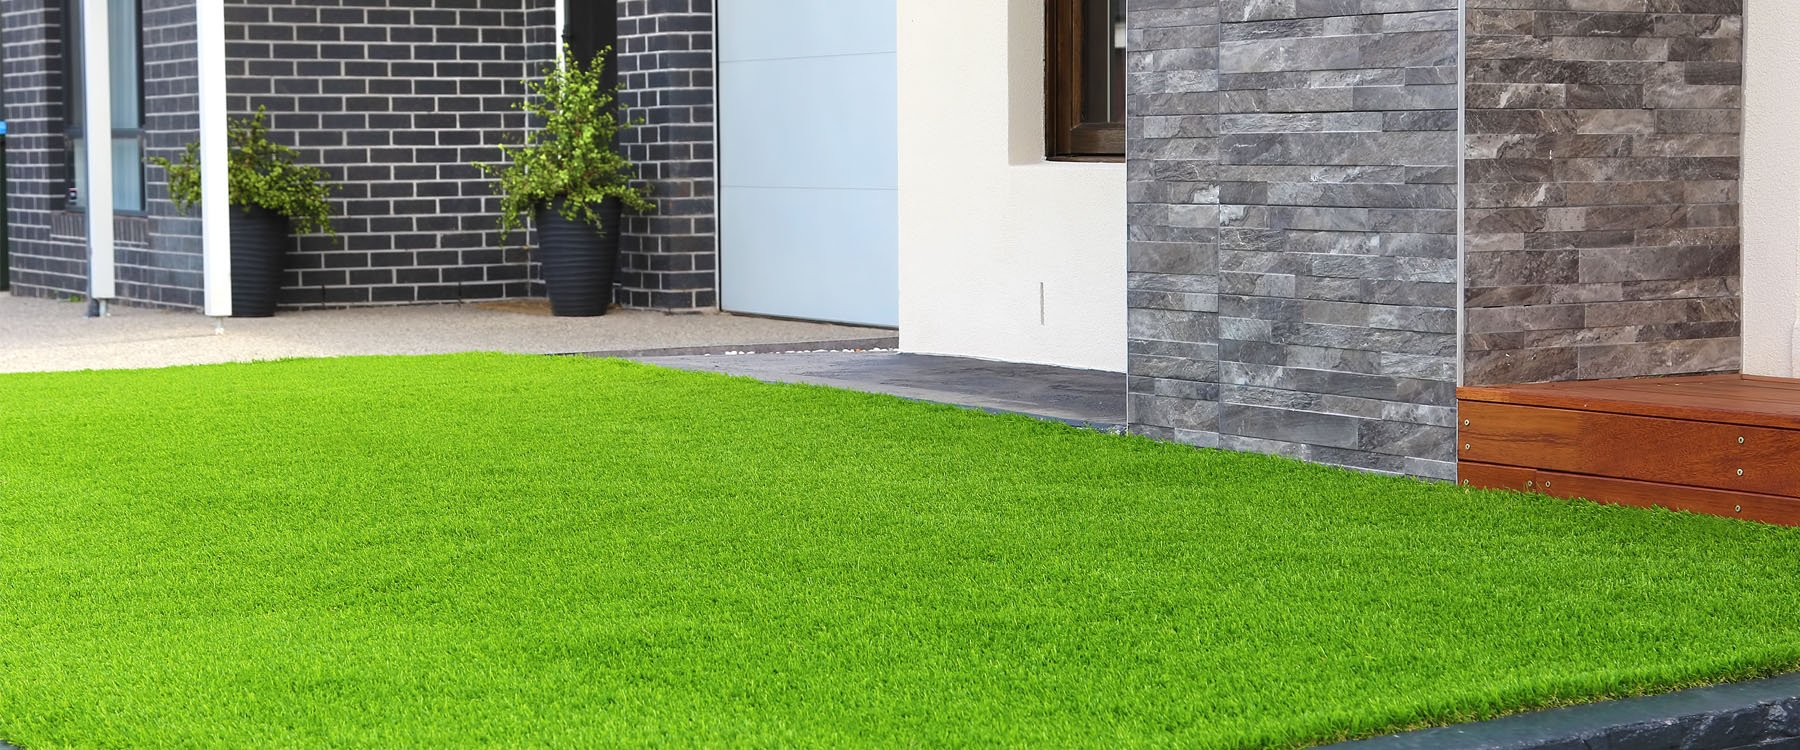 Artificial Turf Reblooming: What Is It and When To Do It